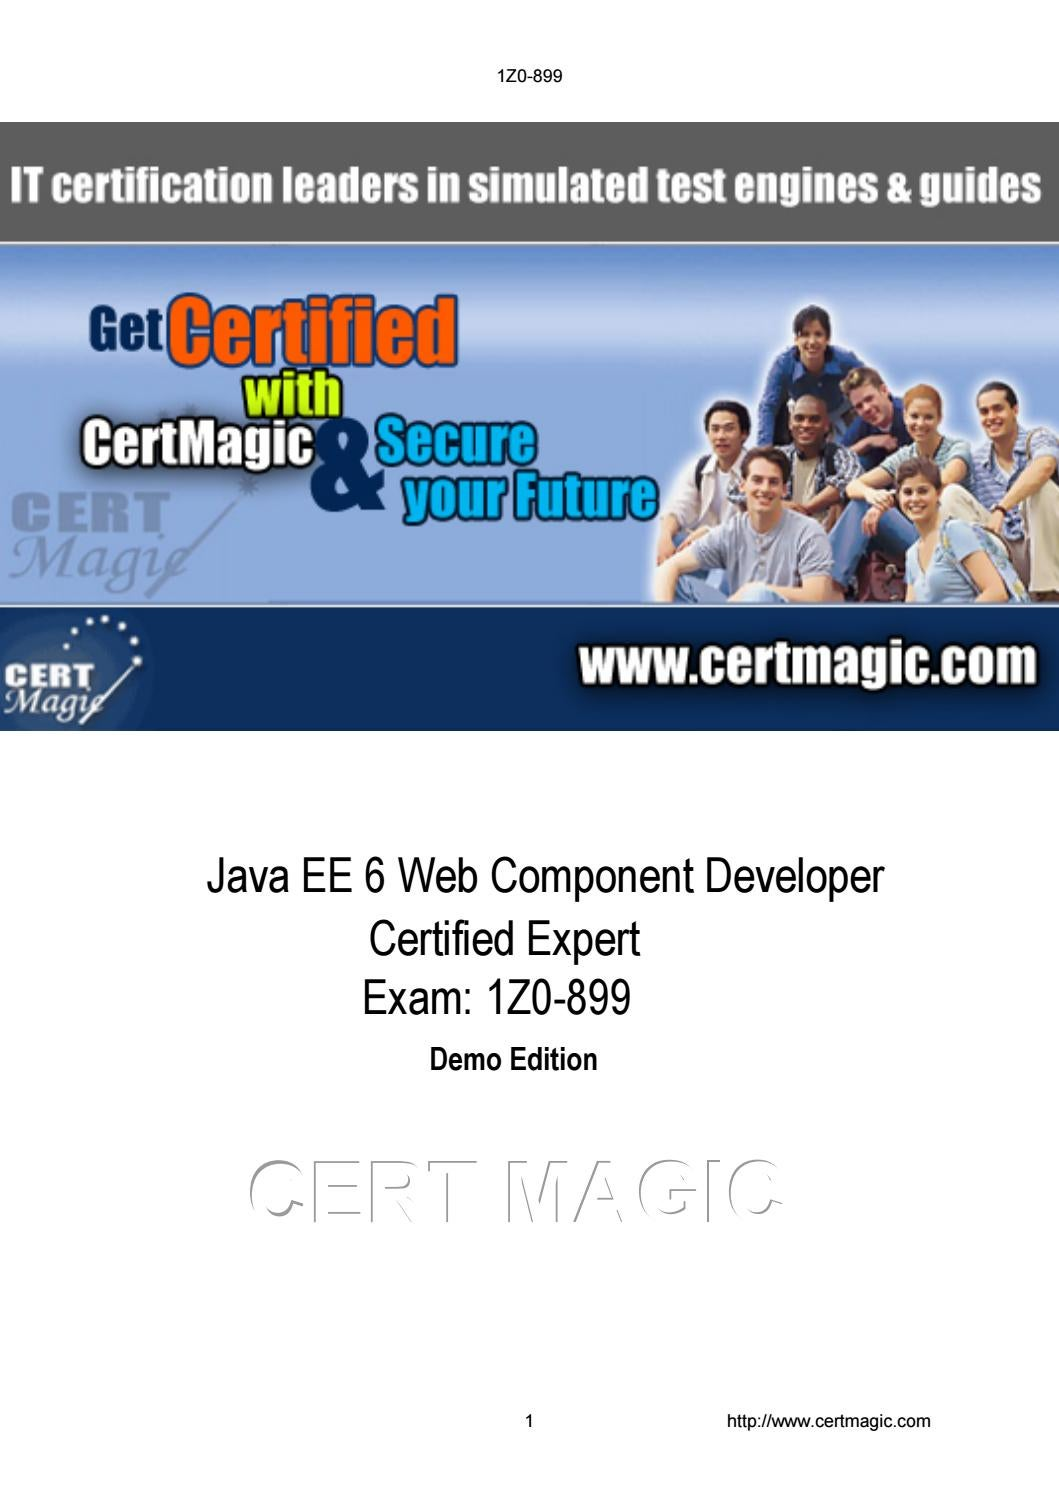 Exam 1Z0-899 Java EE 6 Web Component Developer Certified Expert Exam by  olivia jayden - issuu